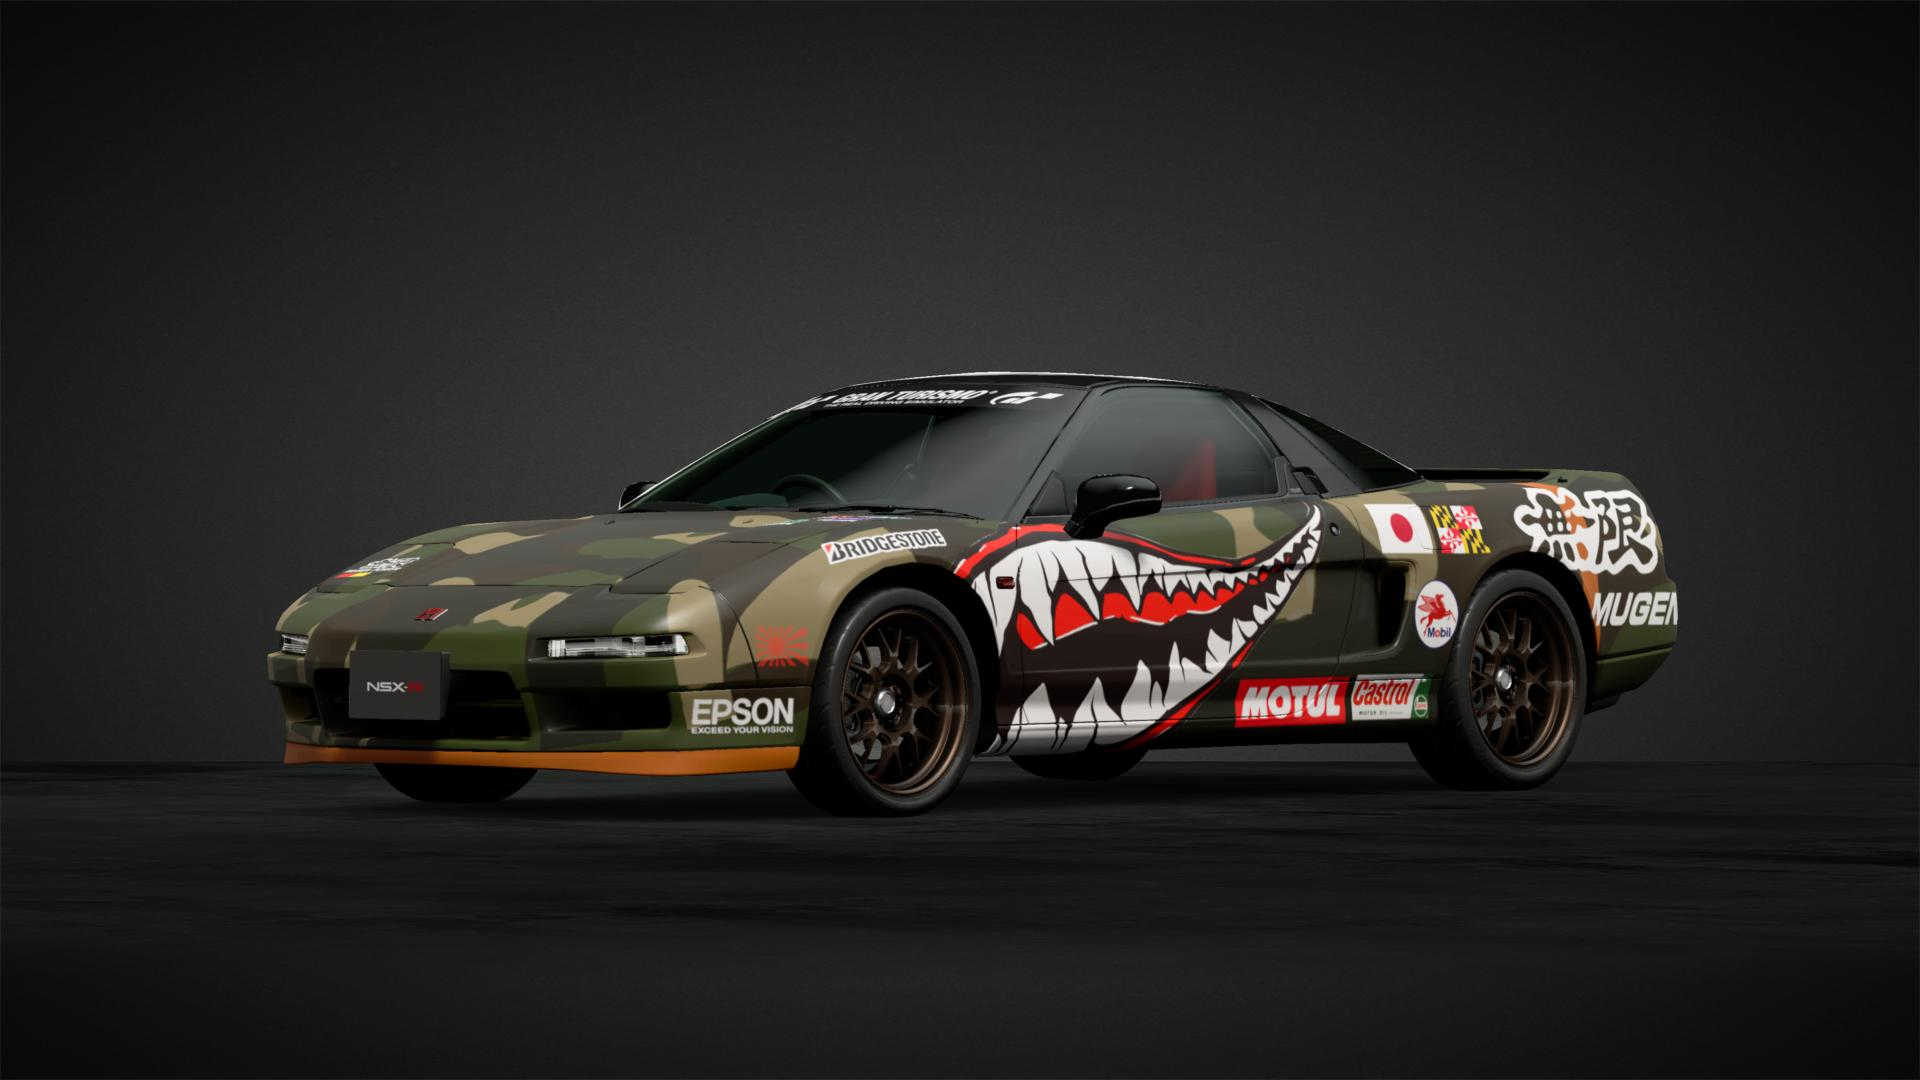 Honda NSX racing livery. Inspired by classic fighter jets.